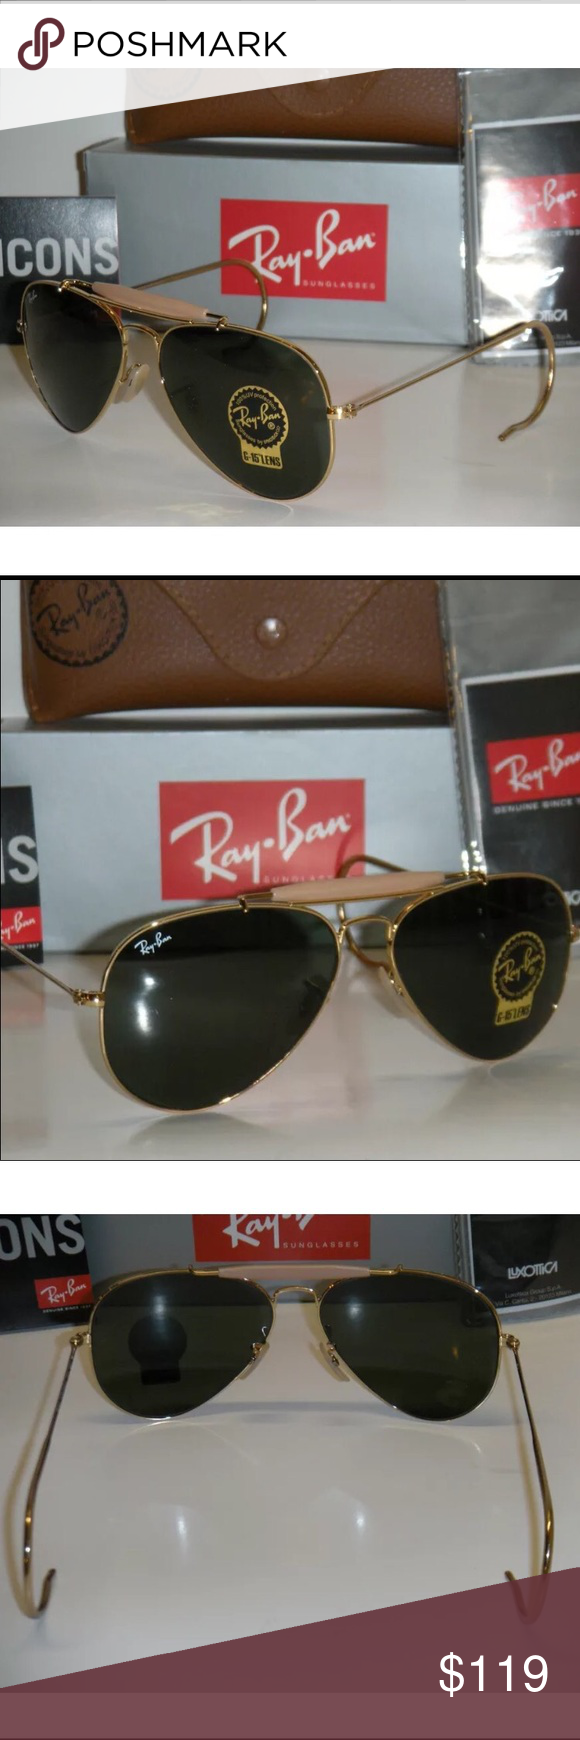 Ray Ban Aviator Outdoorsman Sunglasses 58mm Description Ray Ban Aviator Outdoorsman Sunglasses.   Model: RB3030 L0216 Frame Color: Arista (Gold) Lens Color: G-15 GreenSize: 58mm ( Medium )  Glass: flash G-15 100% UV Protection  Made in Italy  Item is brand new never worn.   Actual pictures of sunglasses.   THIS ITEM INCLUDES:    Original Ray Ban box, case ,microfiber cleaning cloth & booklets Ray-Ban Accessories Glasses